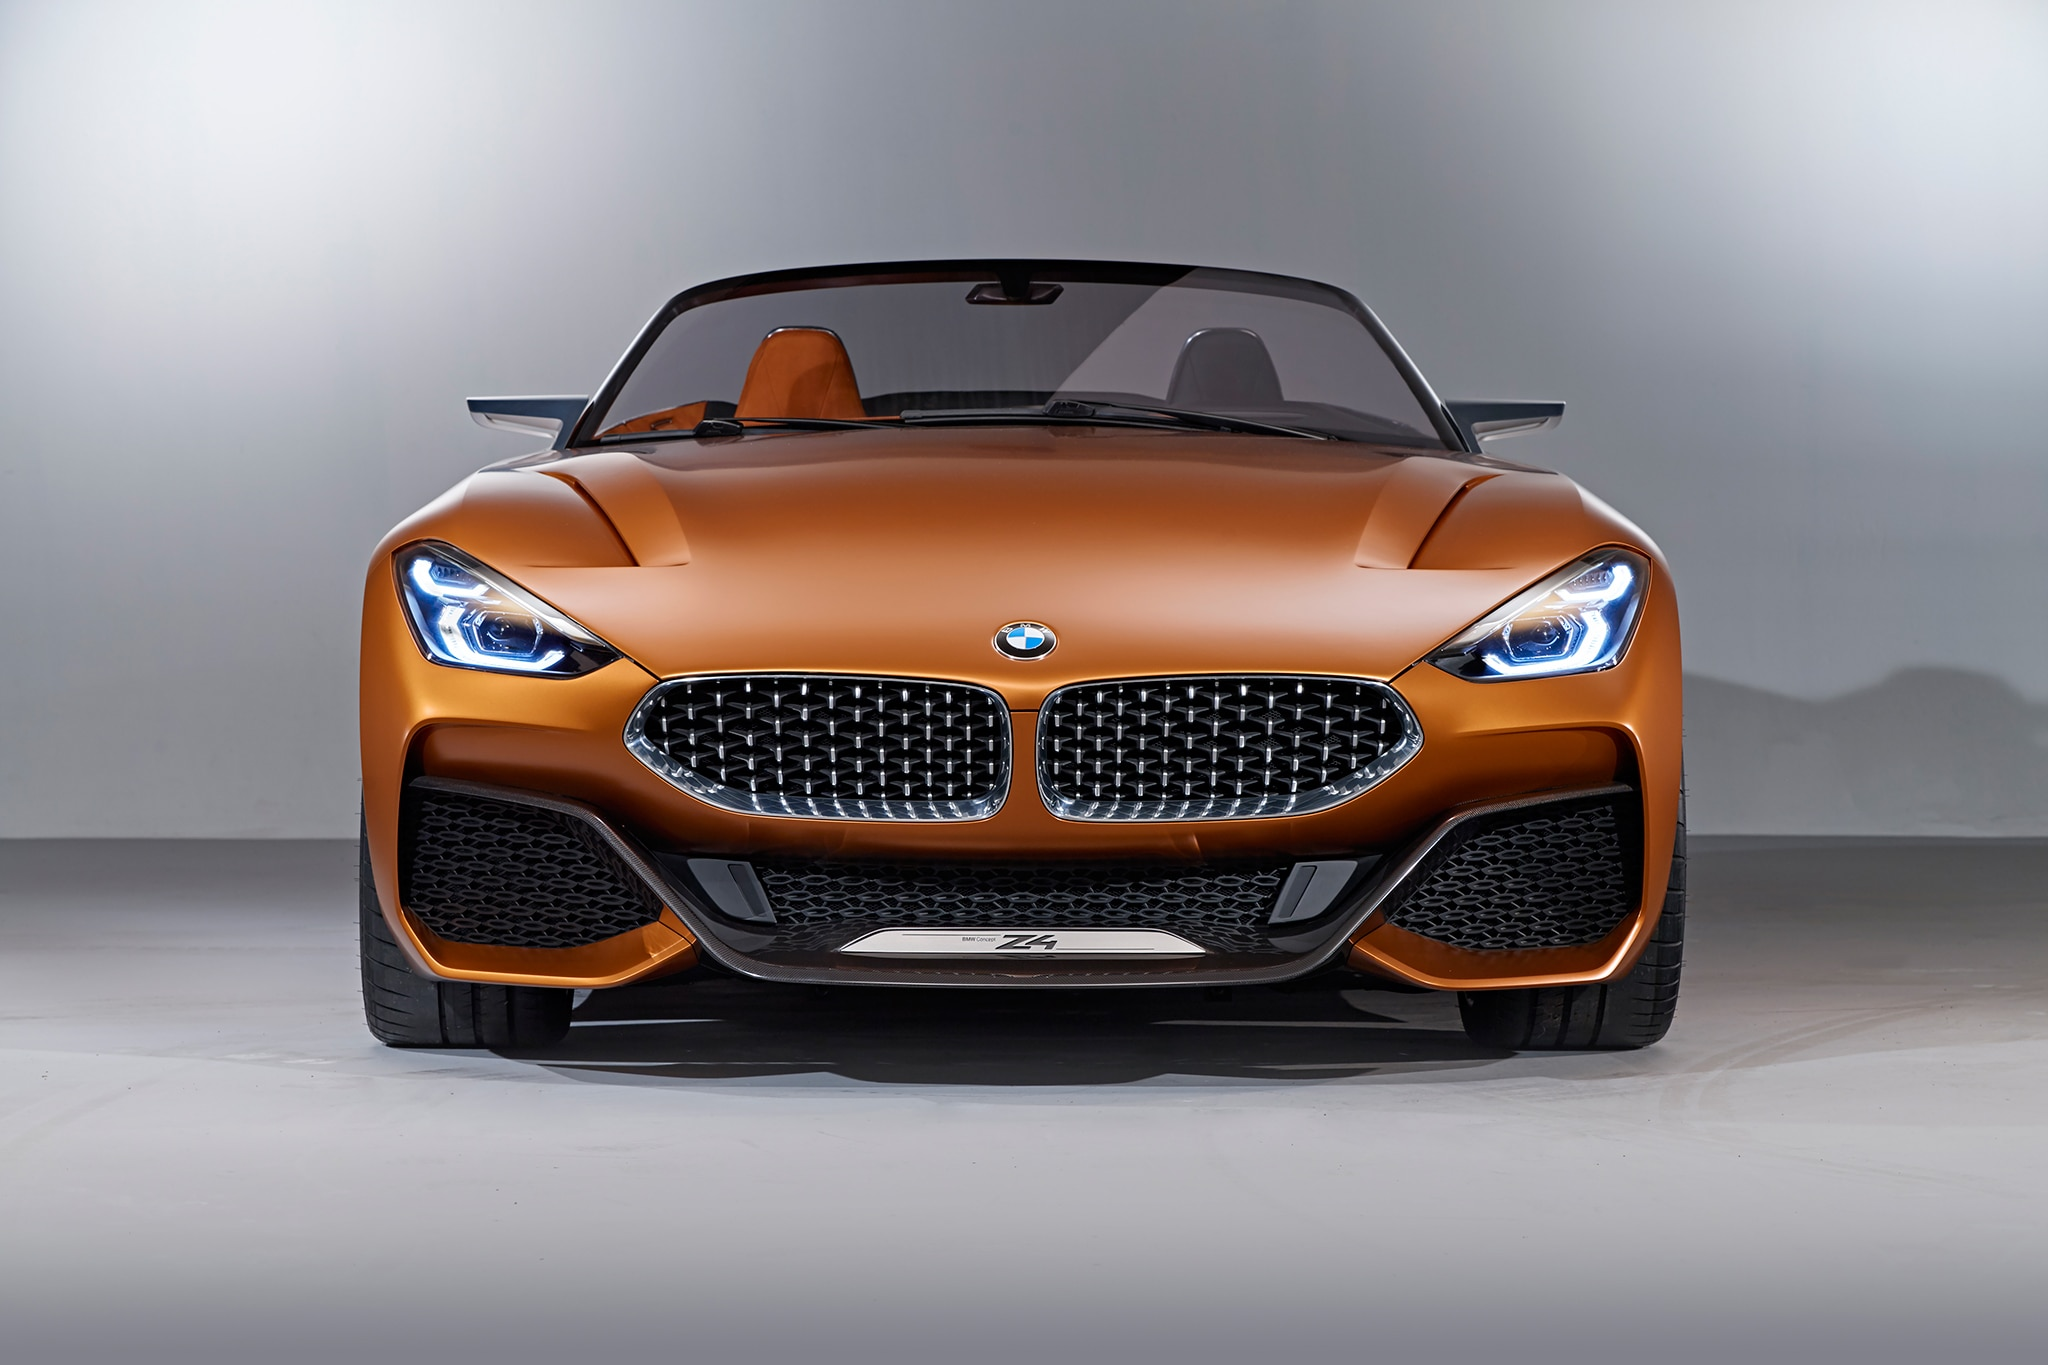 2017 Bmw Z4 Series Price >> 2019 BMW Z4: What to Expect | Automobile Magazine